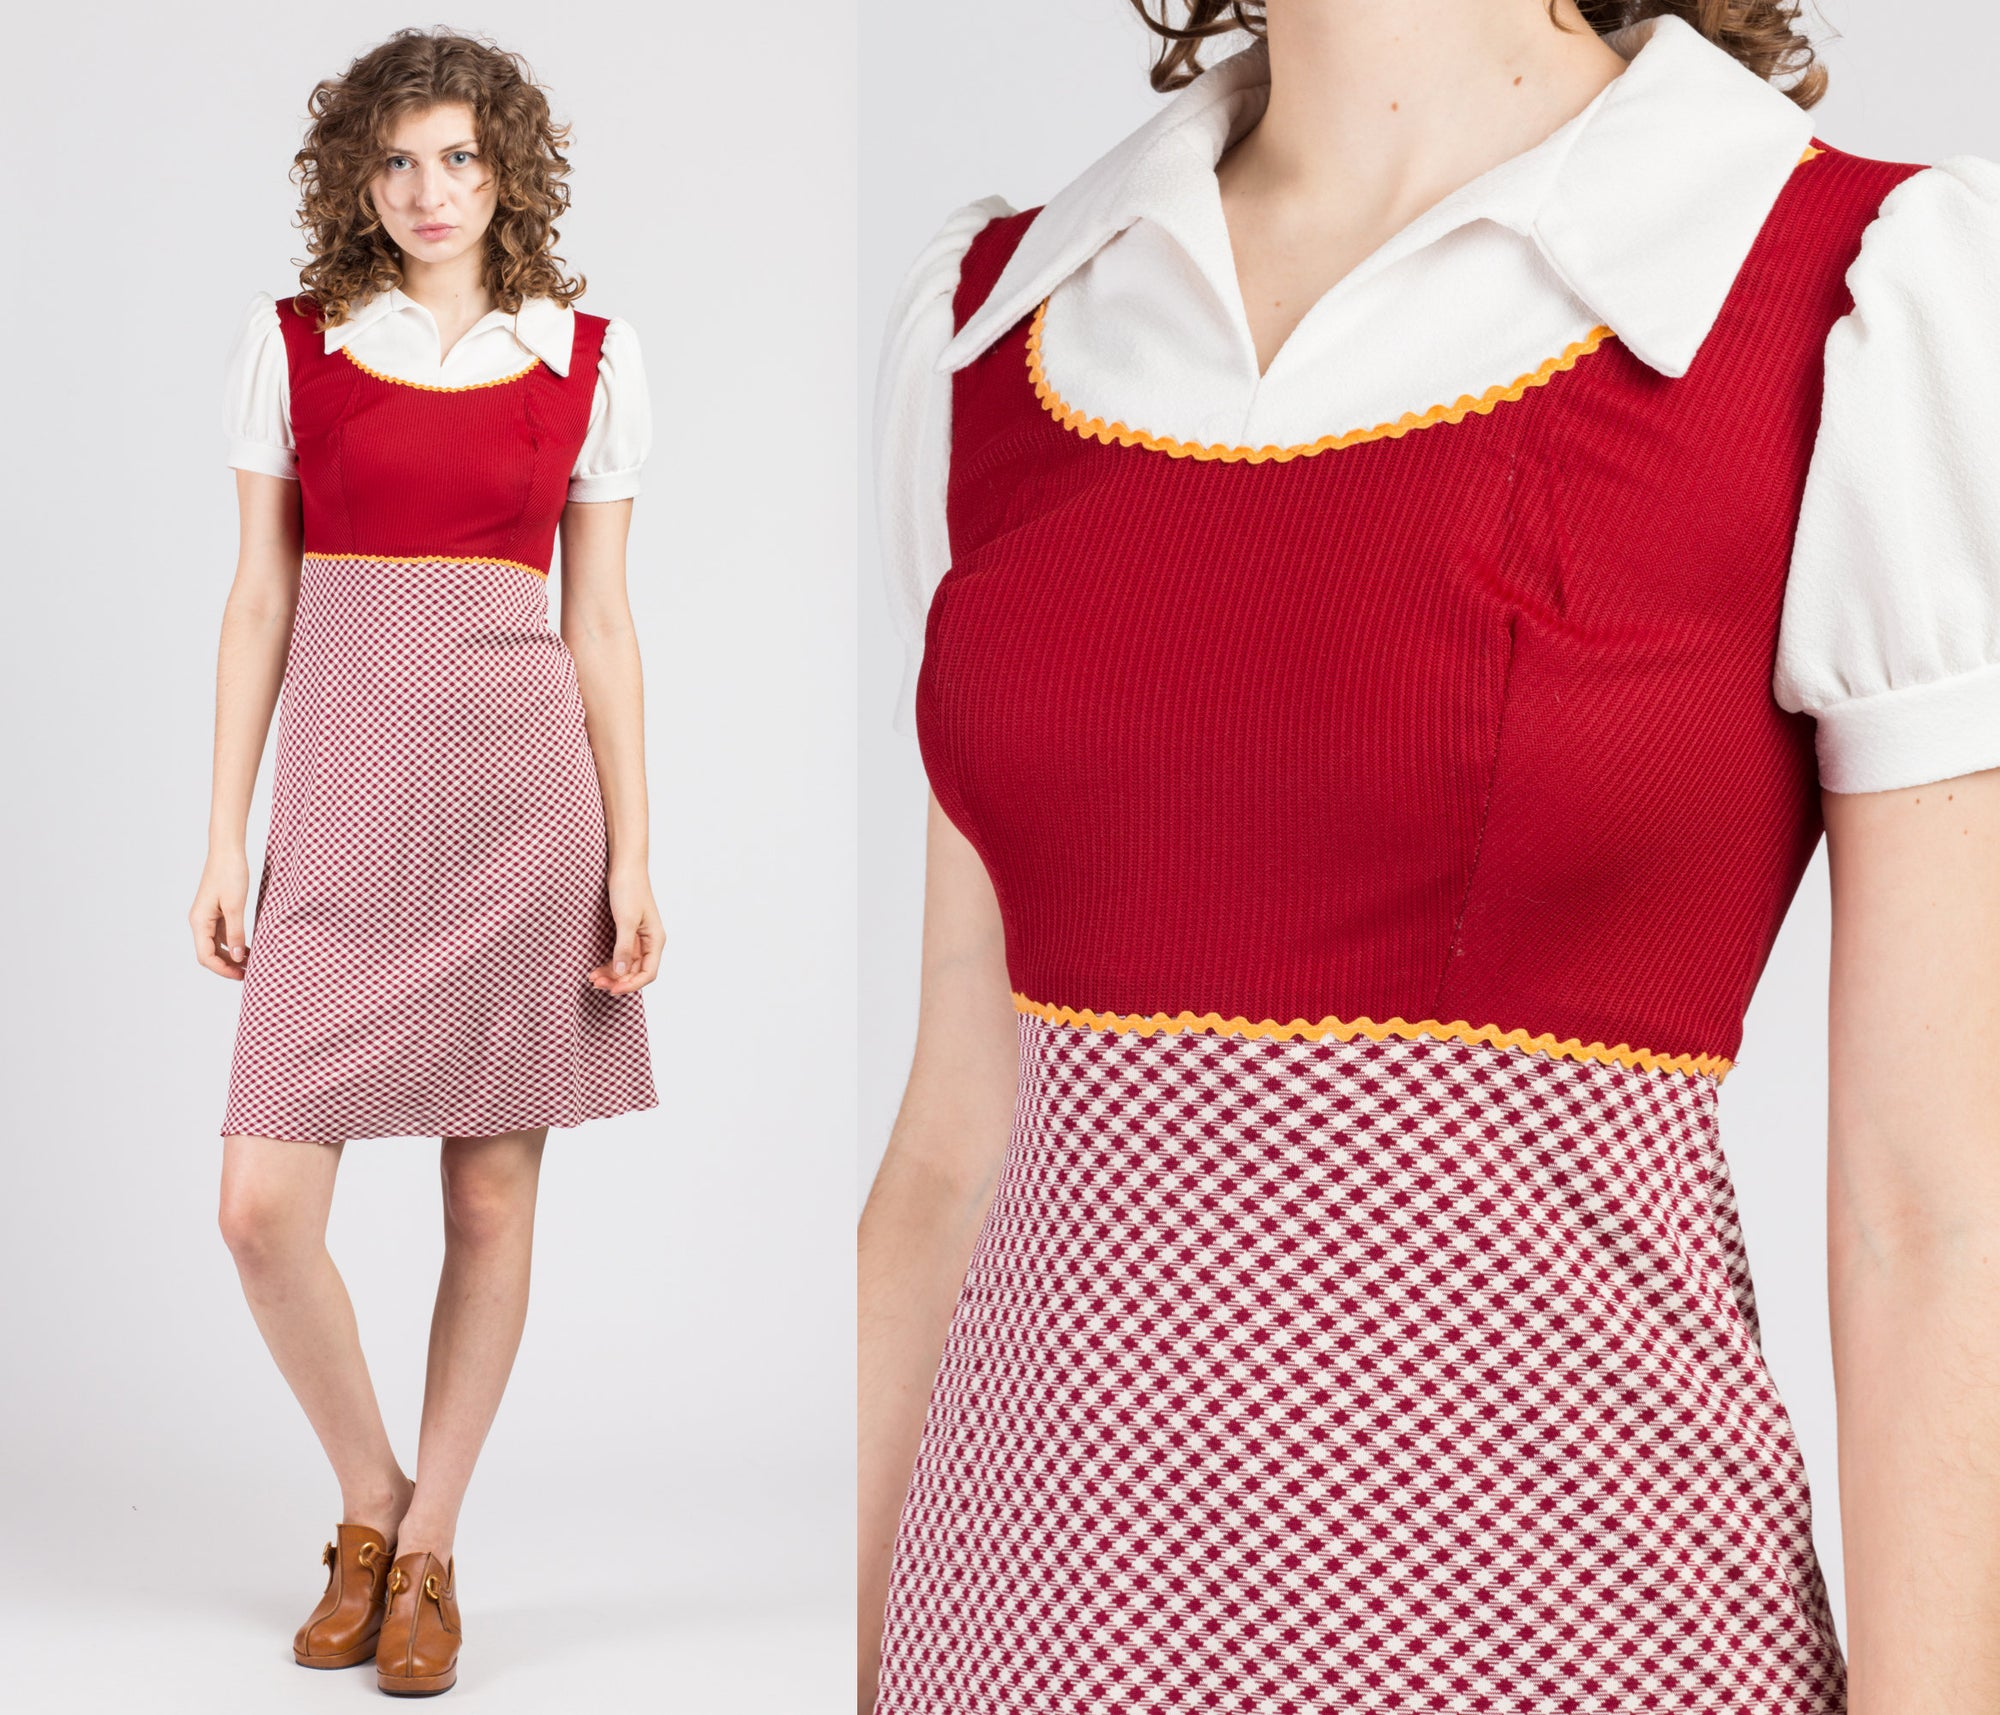 70s Mod Gingham Collared Schoolgirl Mini Dress - Small